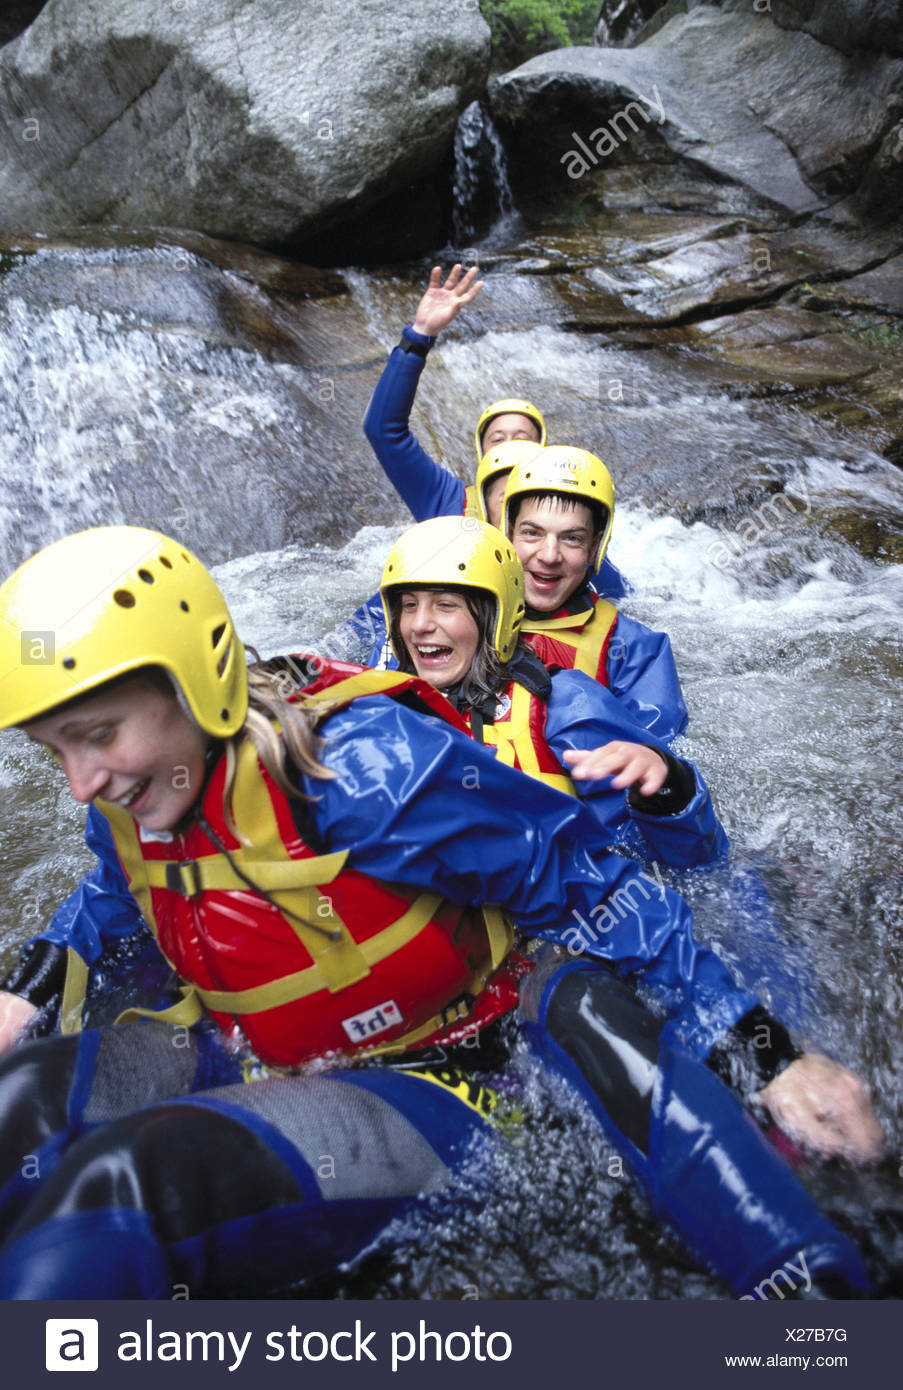 equipment Canyoning adventure group one after other water canton Ticino Malvaglio Switzerland Europe fun - Stock Image